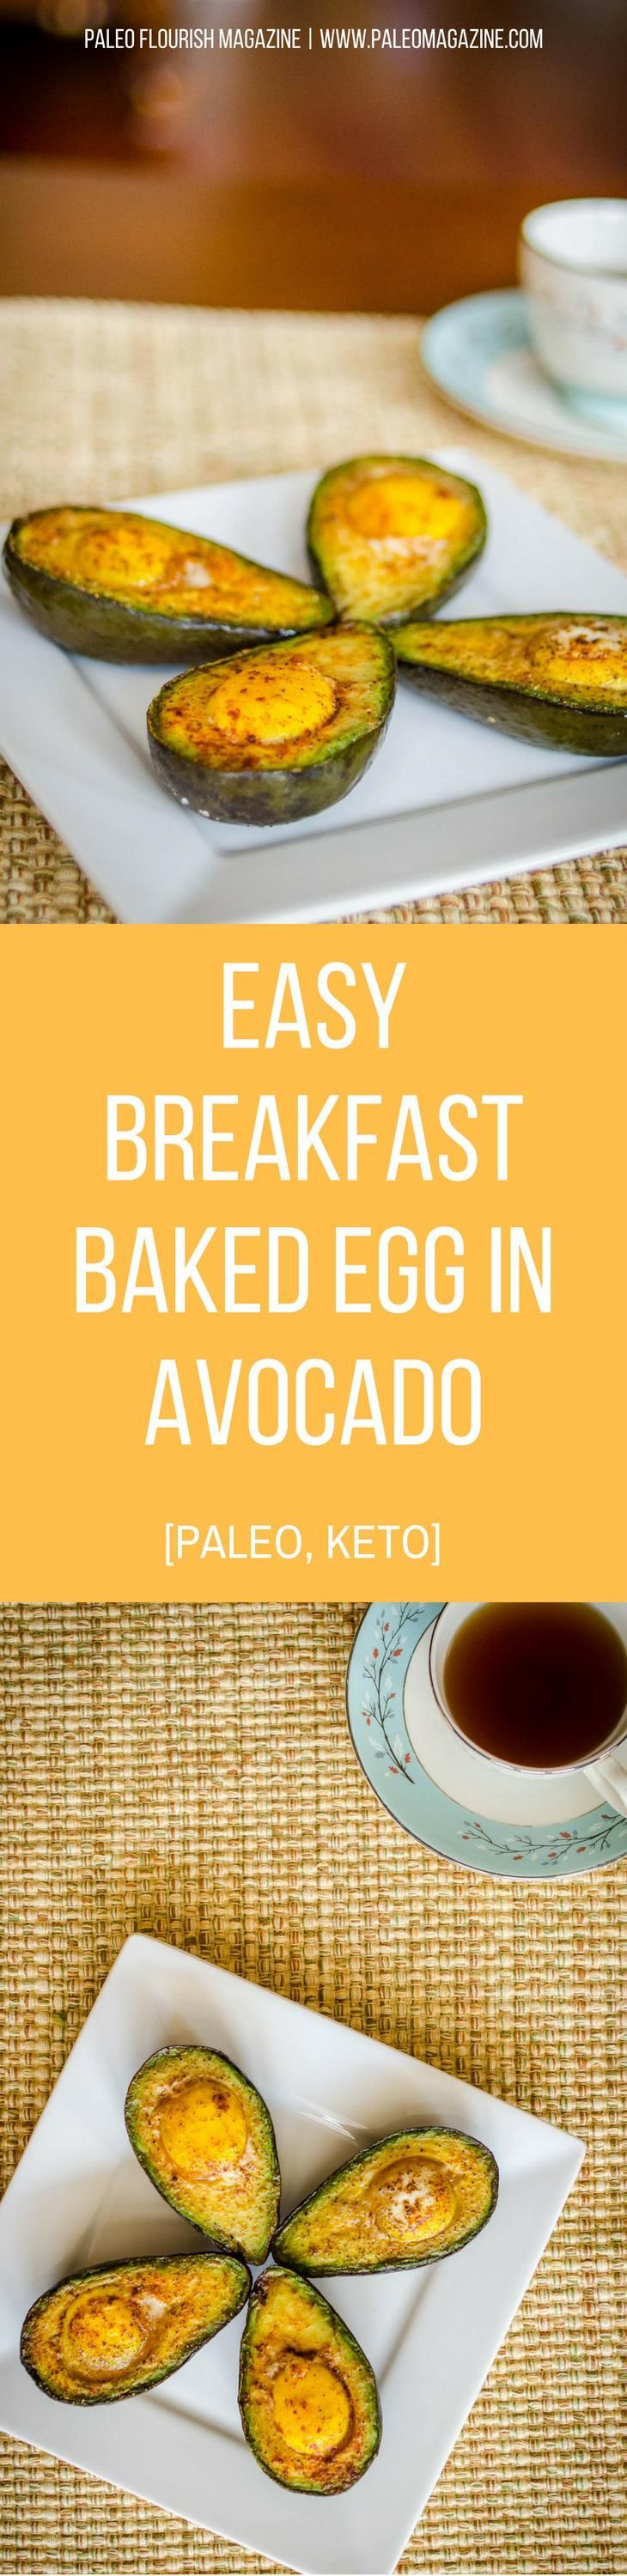 Easy Breakfast Baked Egg in Avocado Recipe [Paleo, Keto] #paleo #keto #recipes - http://paleomagazine.com/baked-egg-in-avocado-recipe